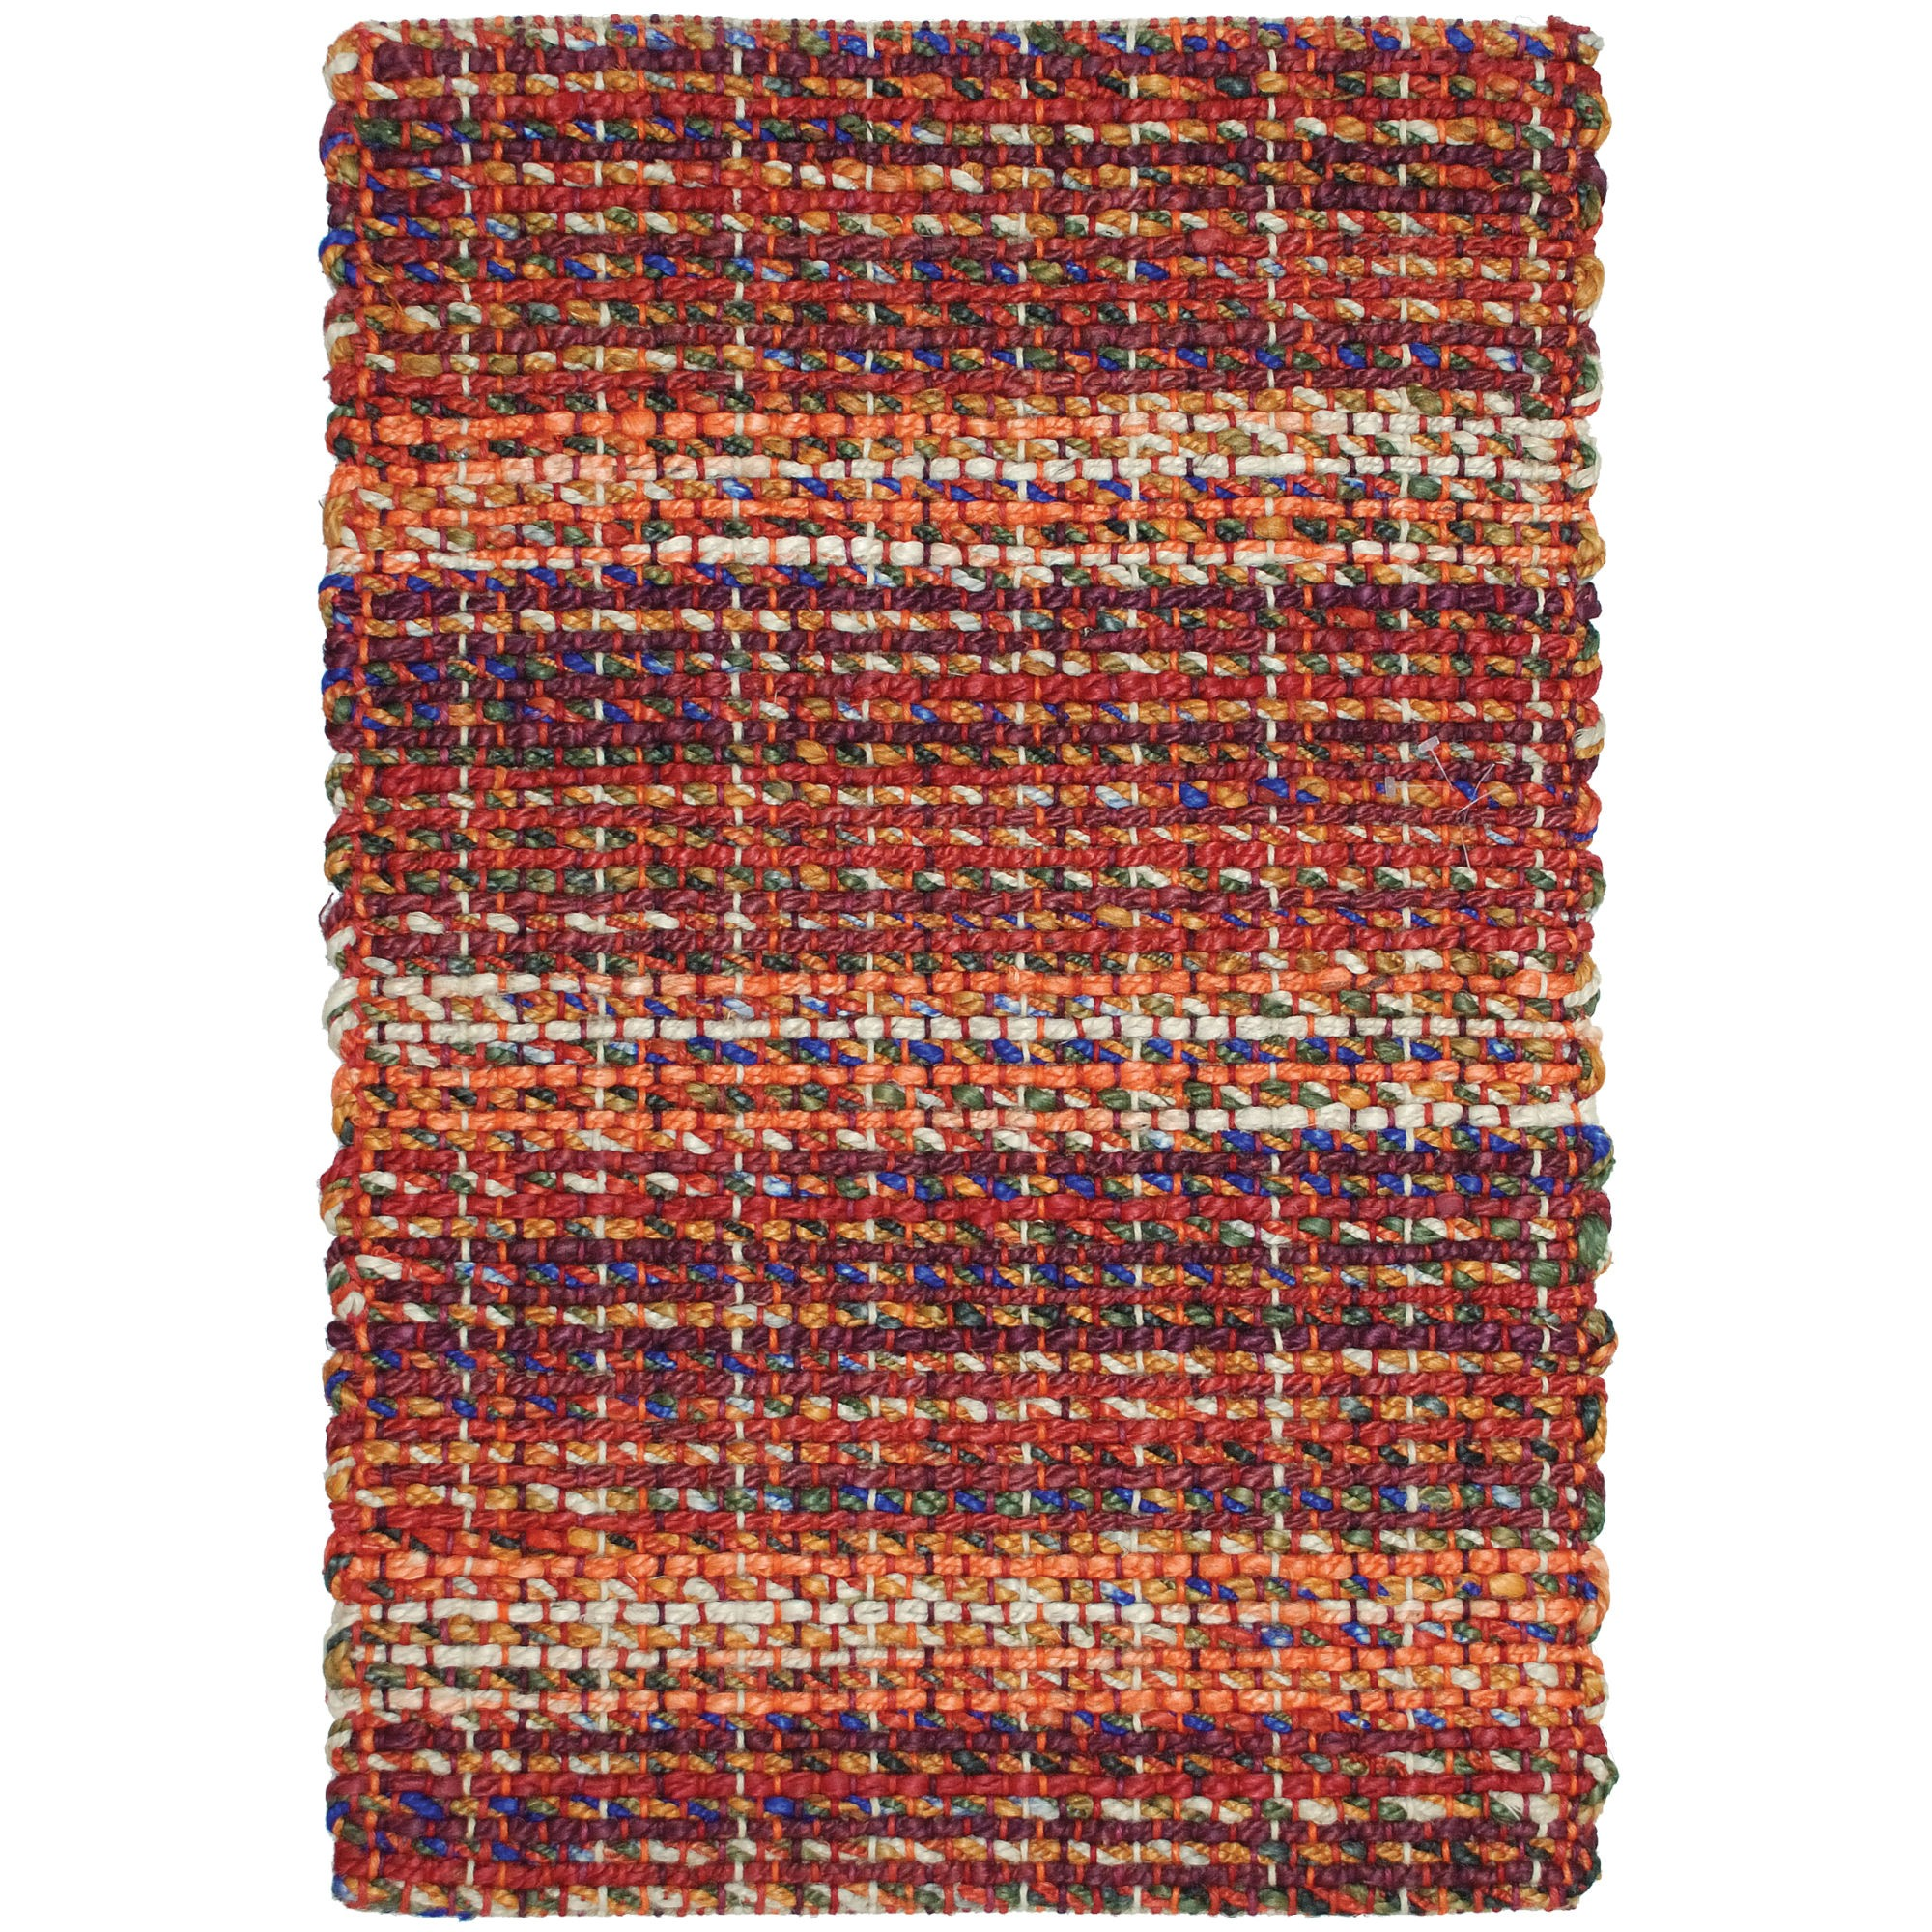 Woven rugs woven rugs QLOAHJB